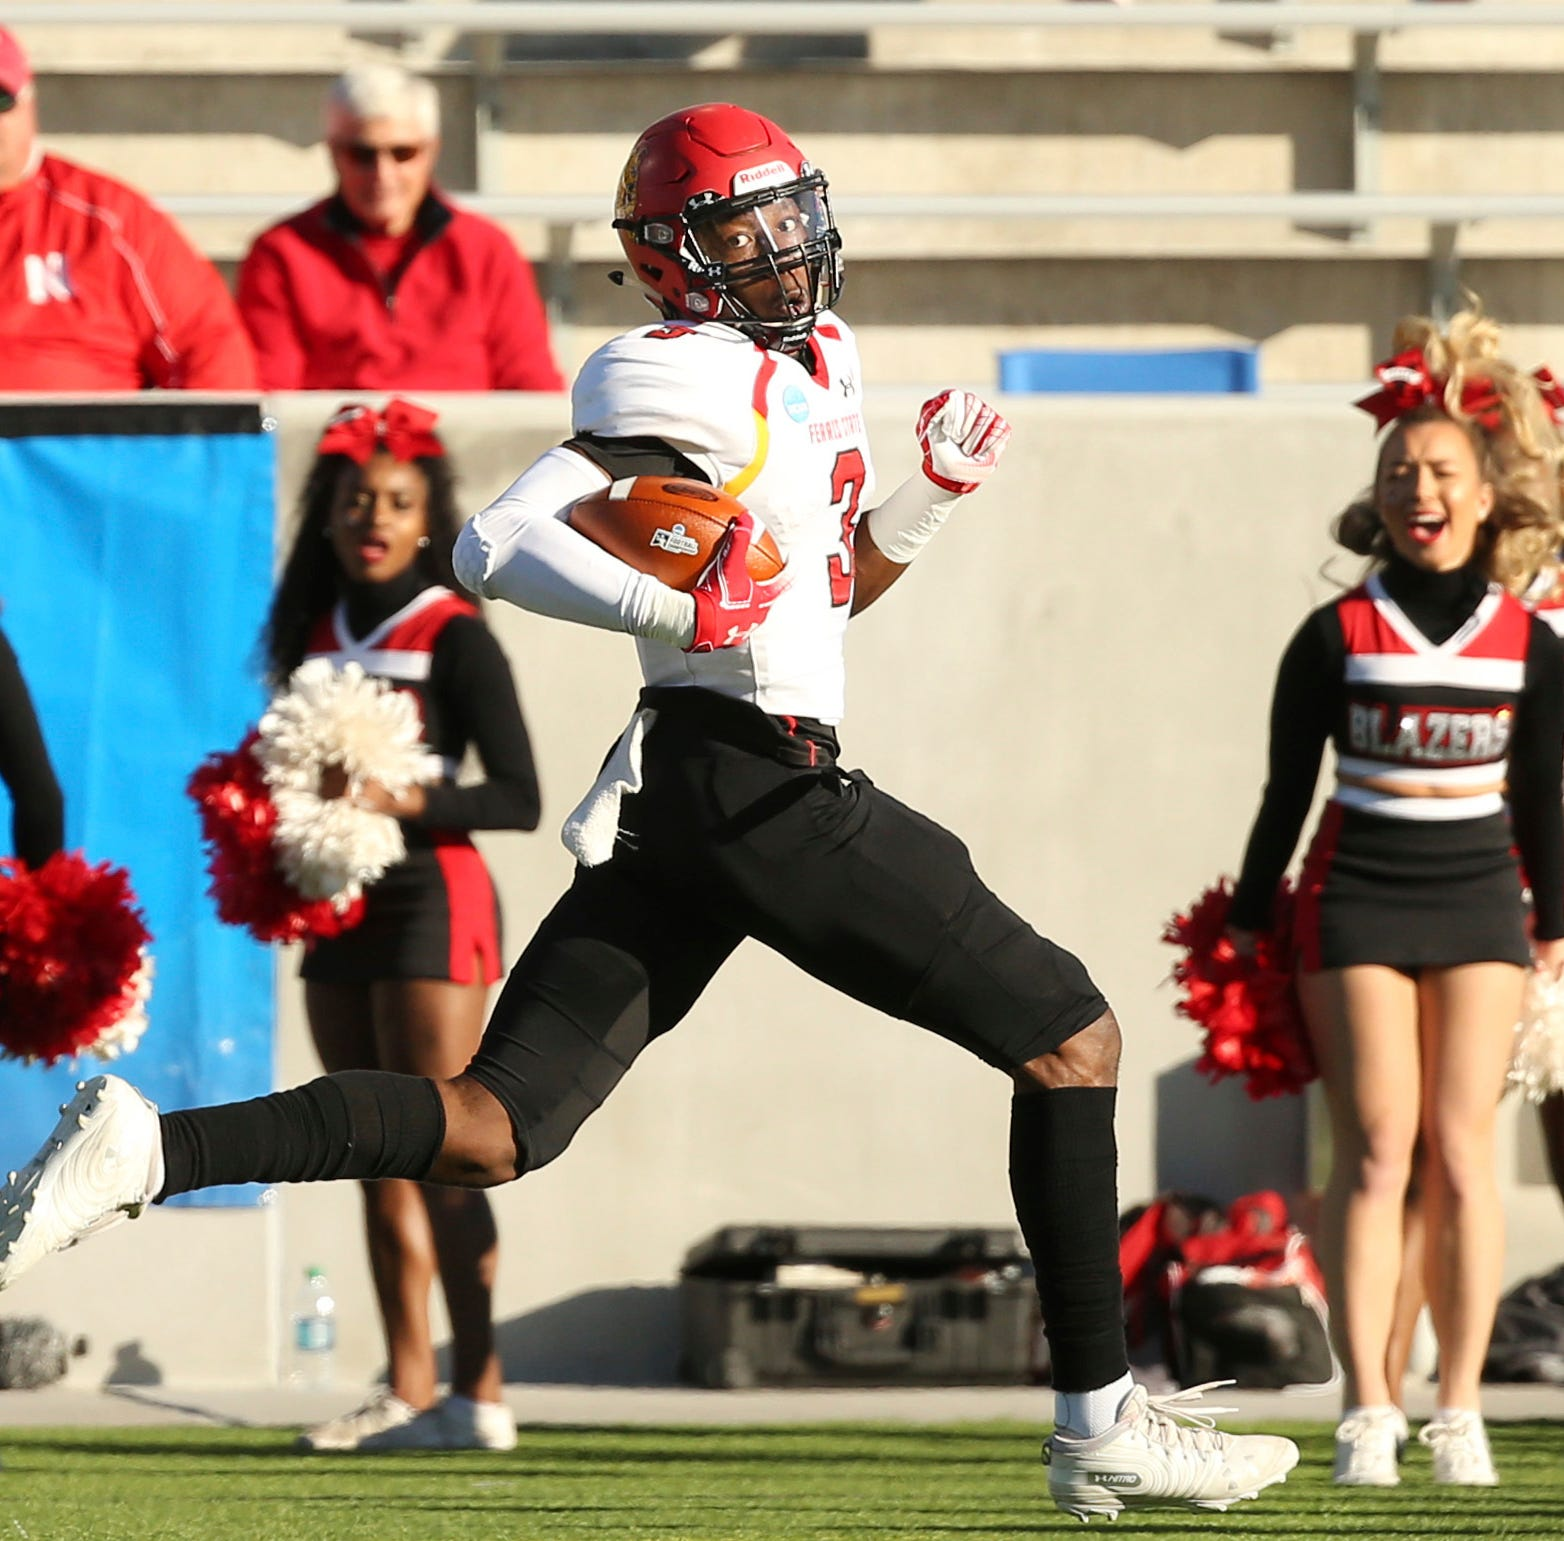 Ferris State's Division II title bid ends in wild 49-47 shootout loss